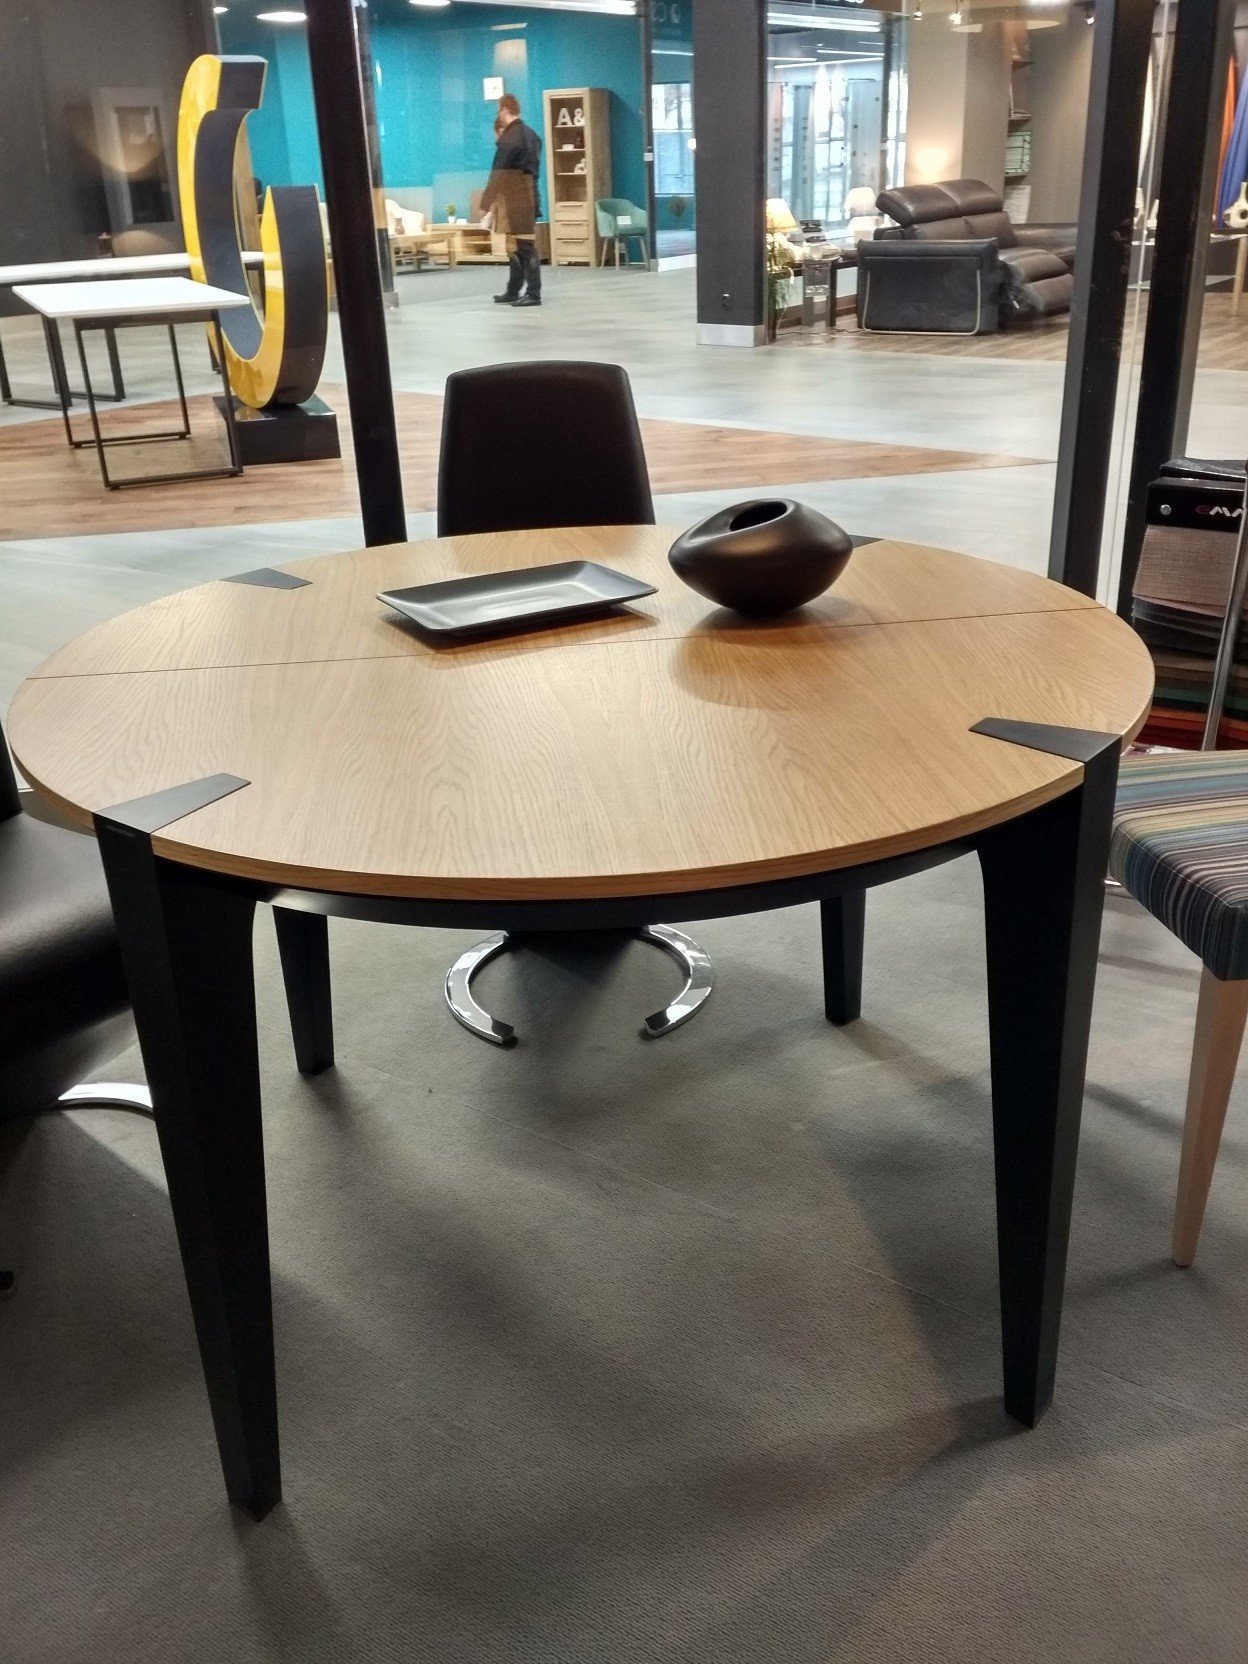 Certo Bespoke Round Extendable Dining Table Dining Tables 3069 Sena Home Furniture